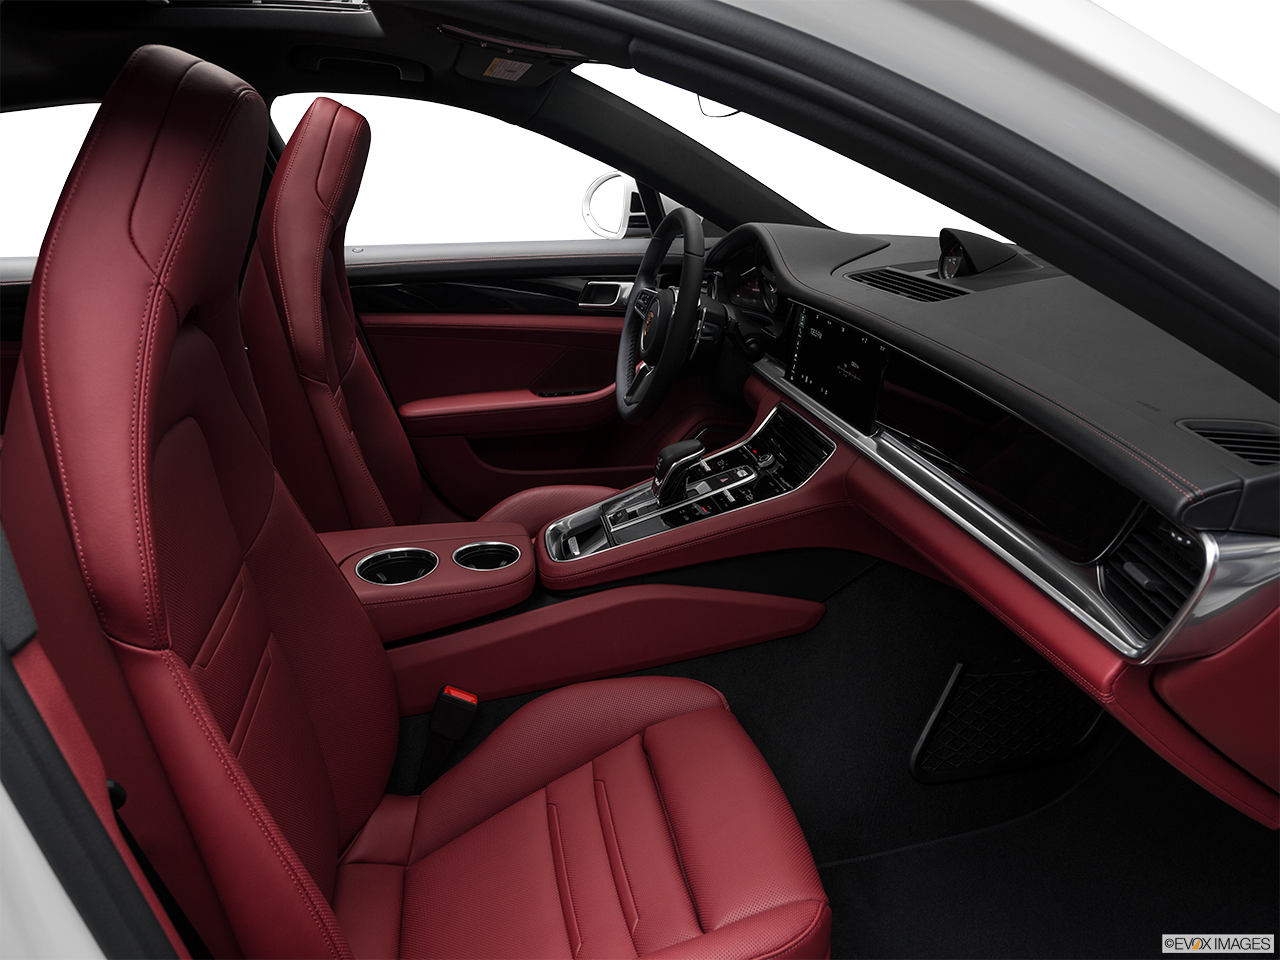 Interior view of the Porsche Panamera Turbo S E-Hybrid